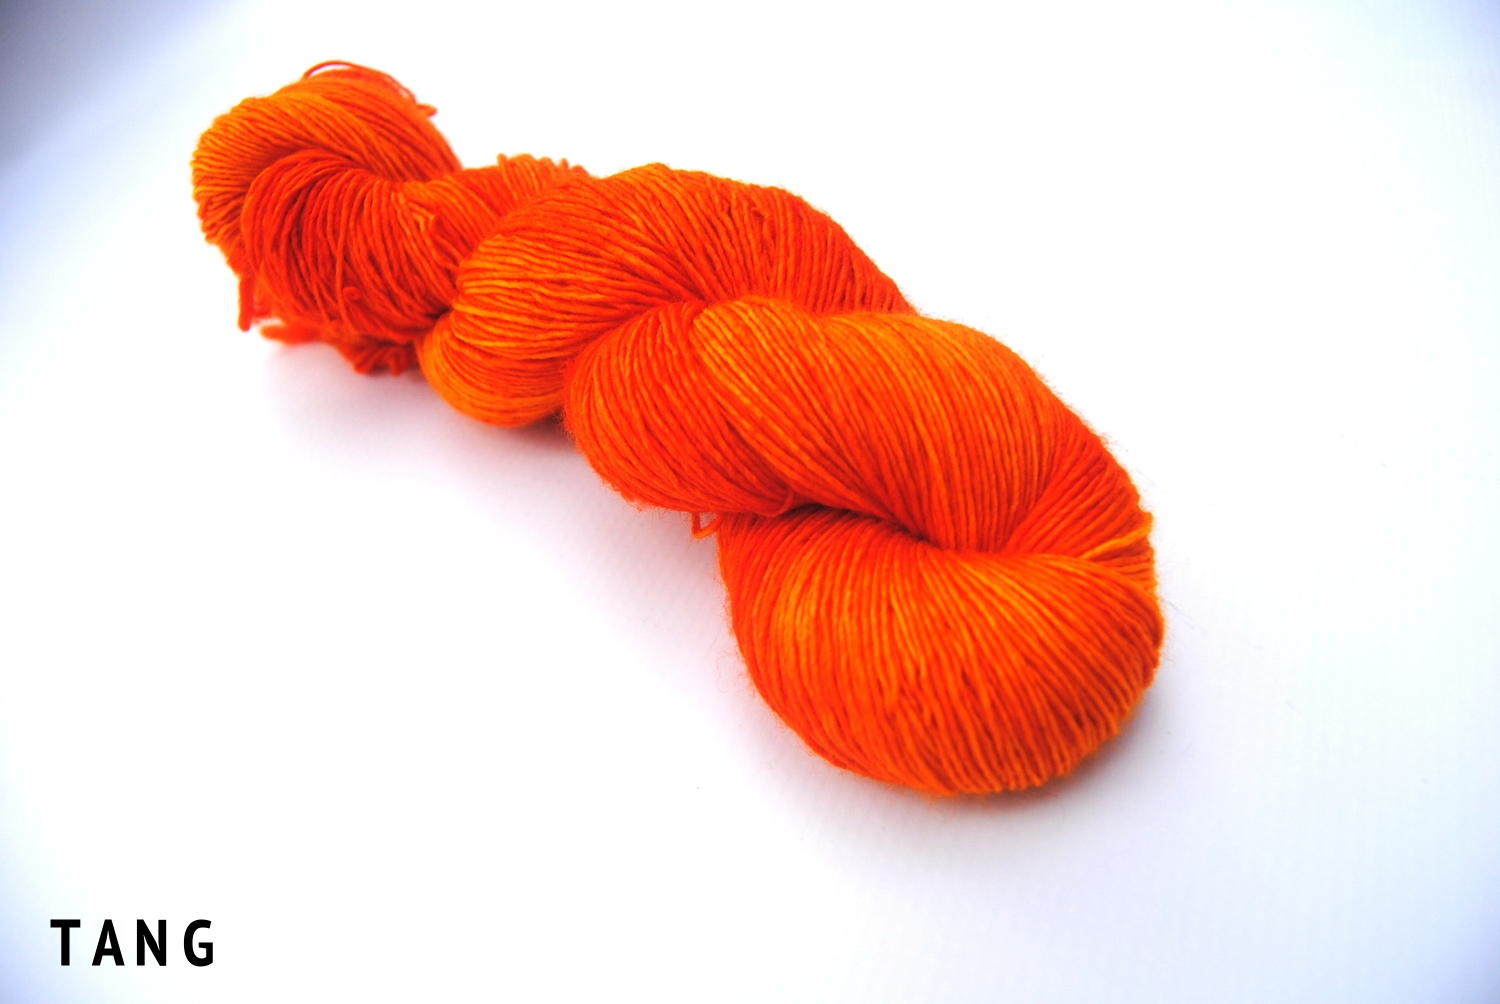 TANG on merino fingering singles.jpg